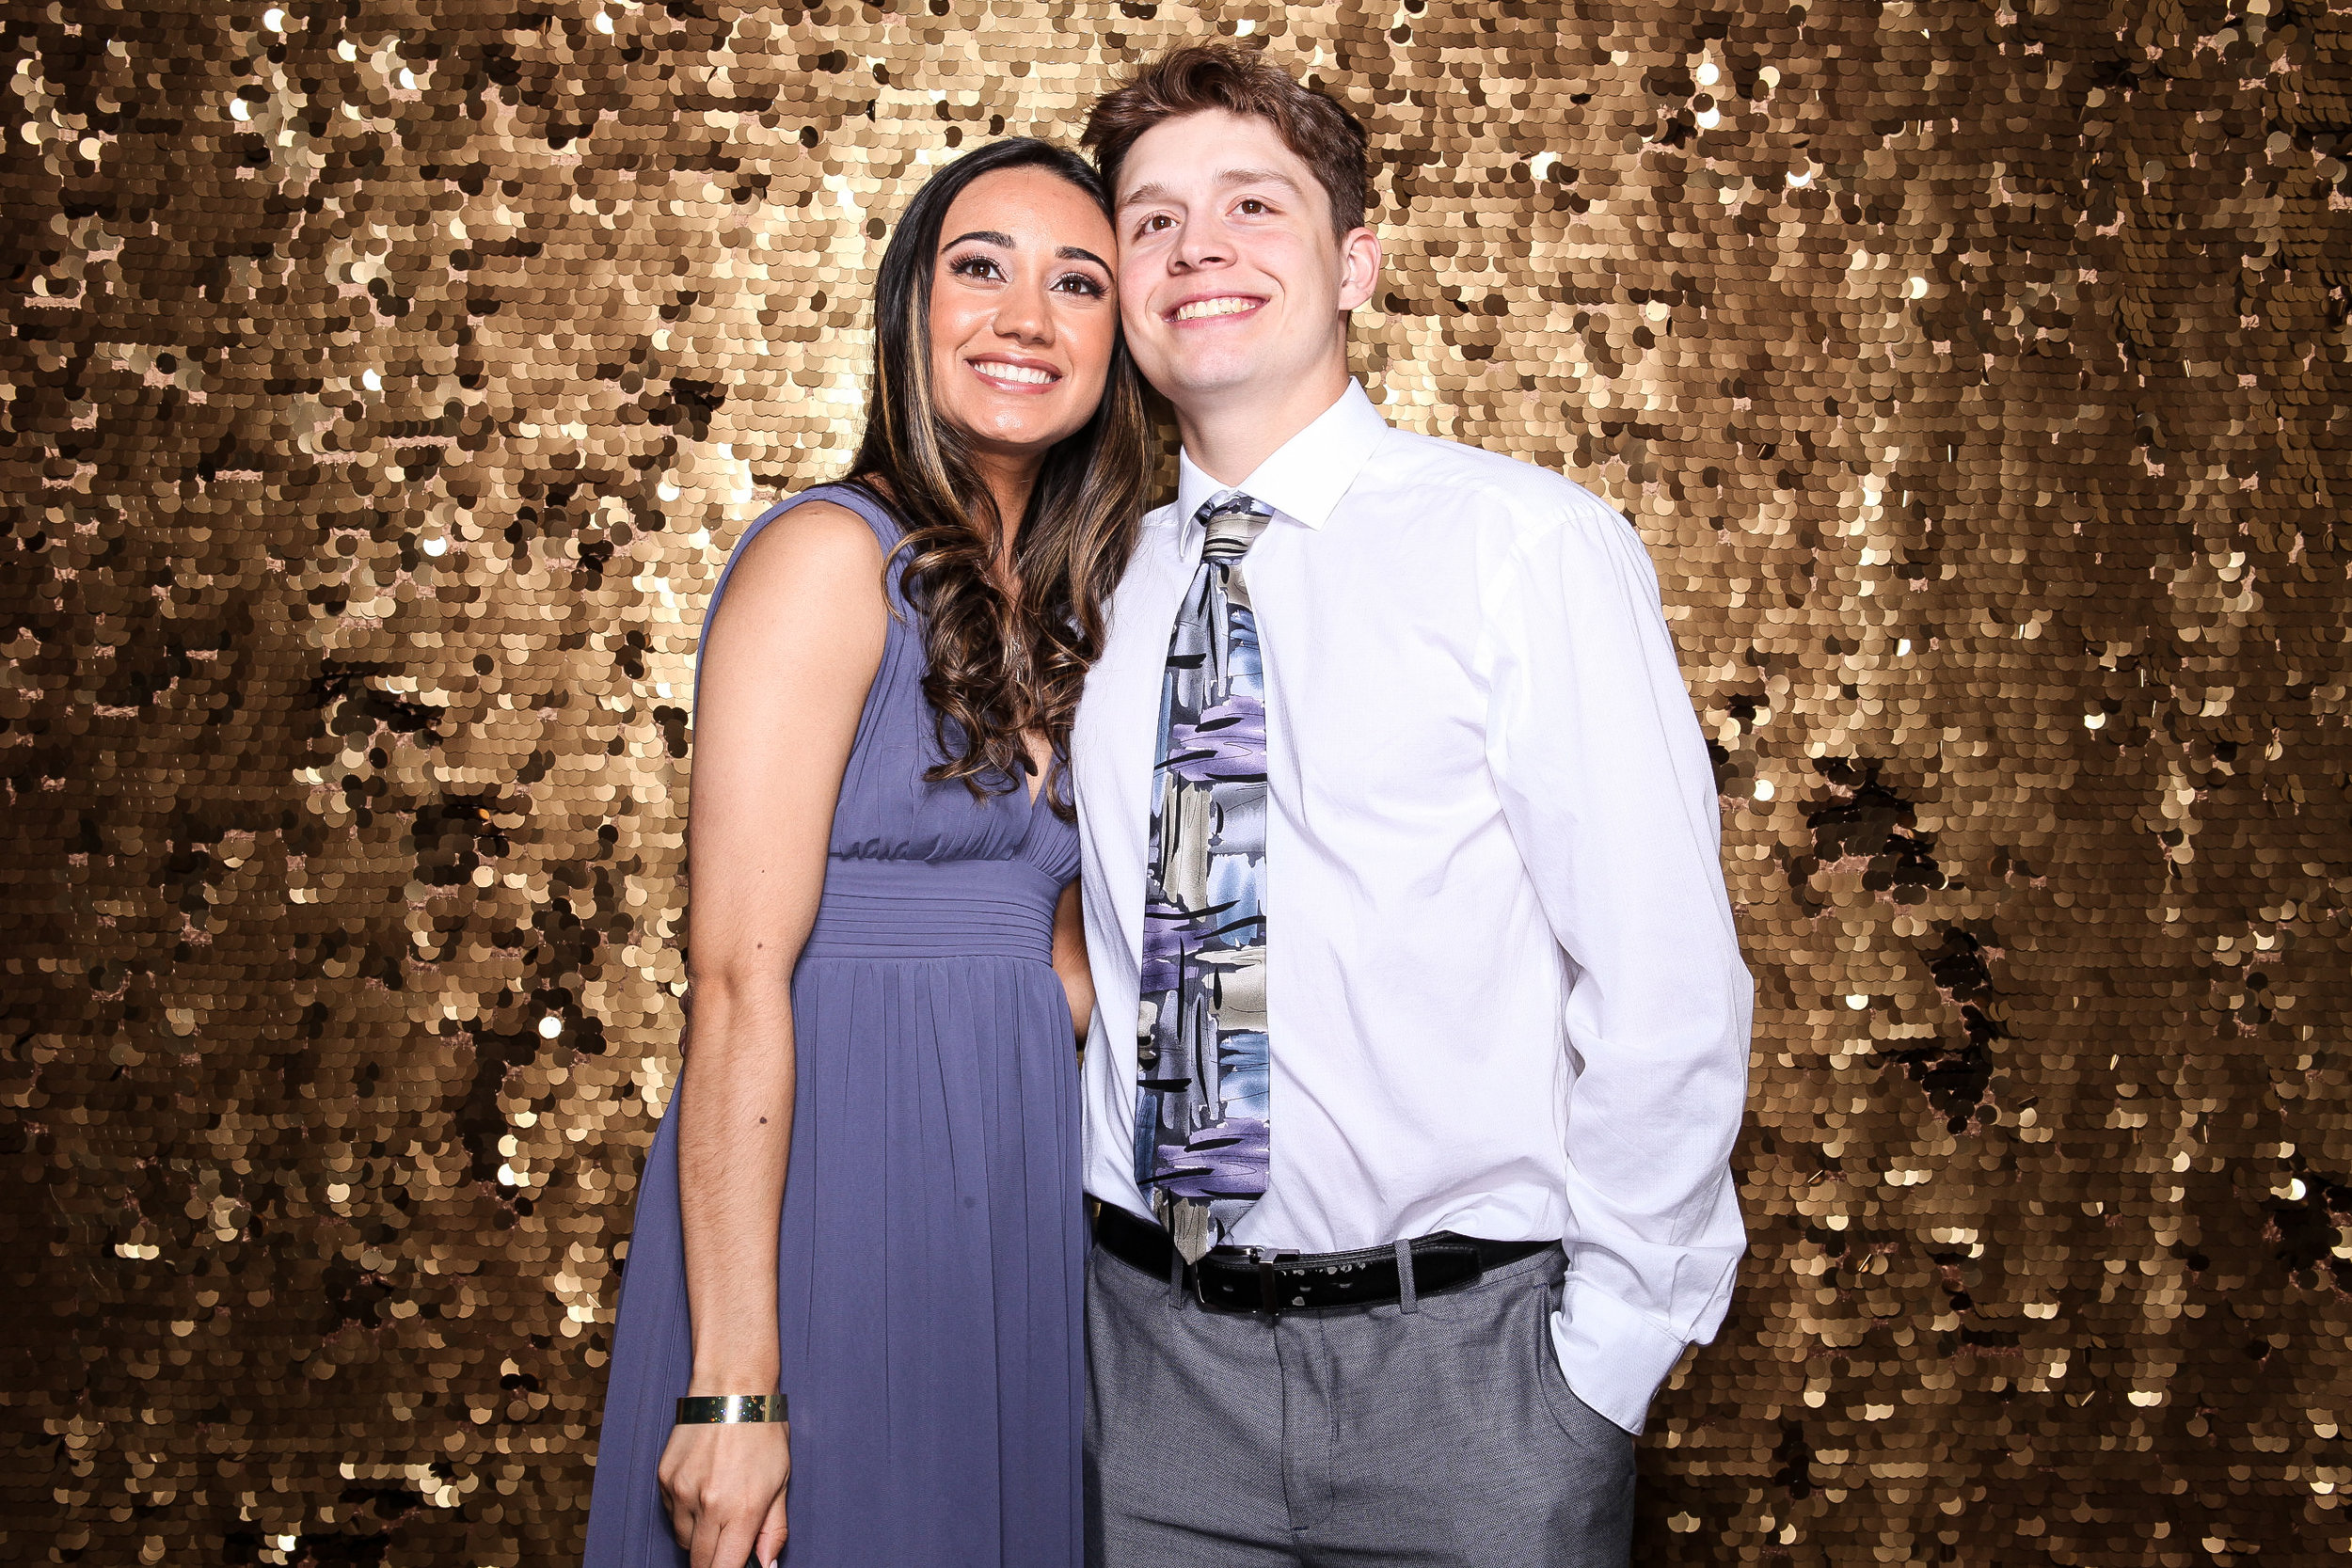 20190503_Adelphi_Senior_Formal-380.jpg